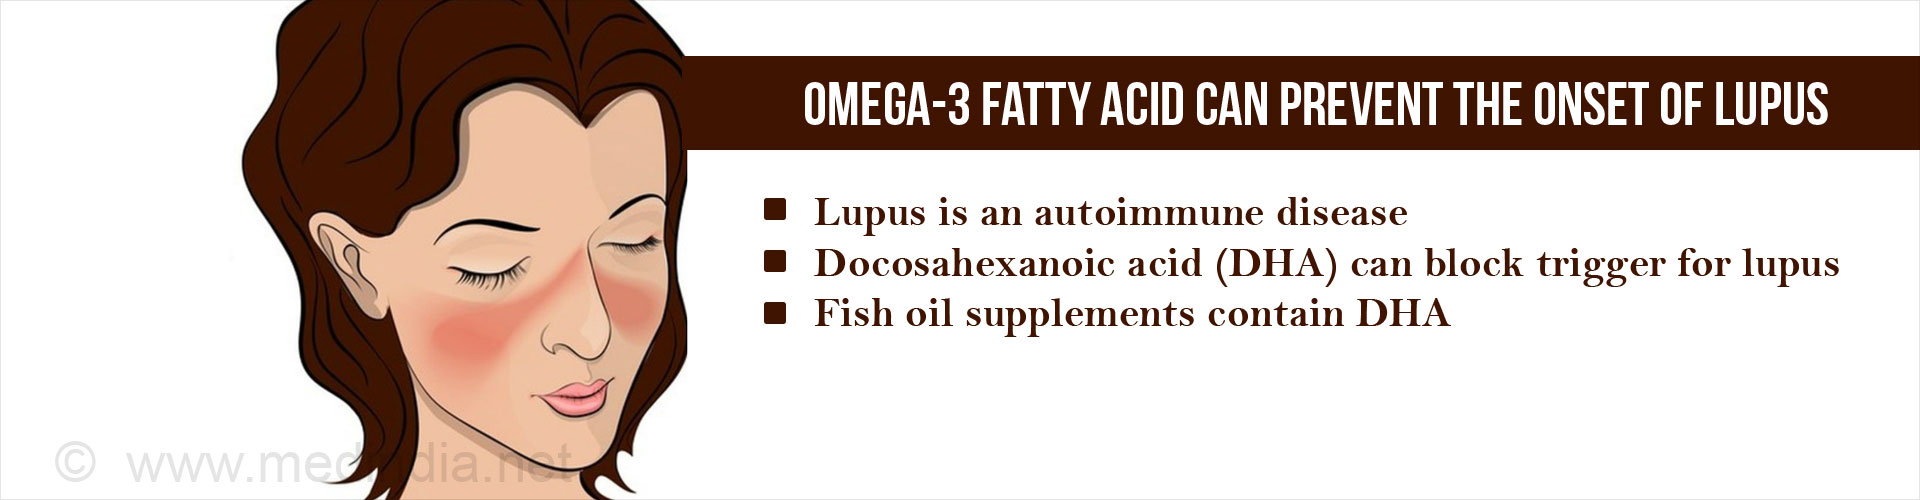 Omega-3 Fatty Acid (Docosahexaenoic Acid) can Prevent Lupus